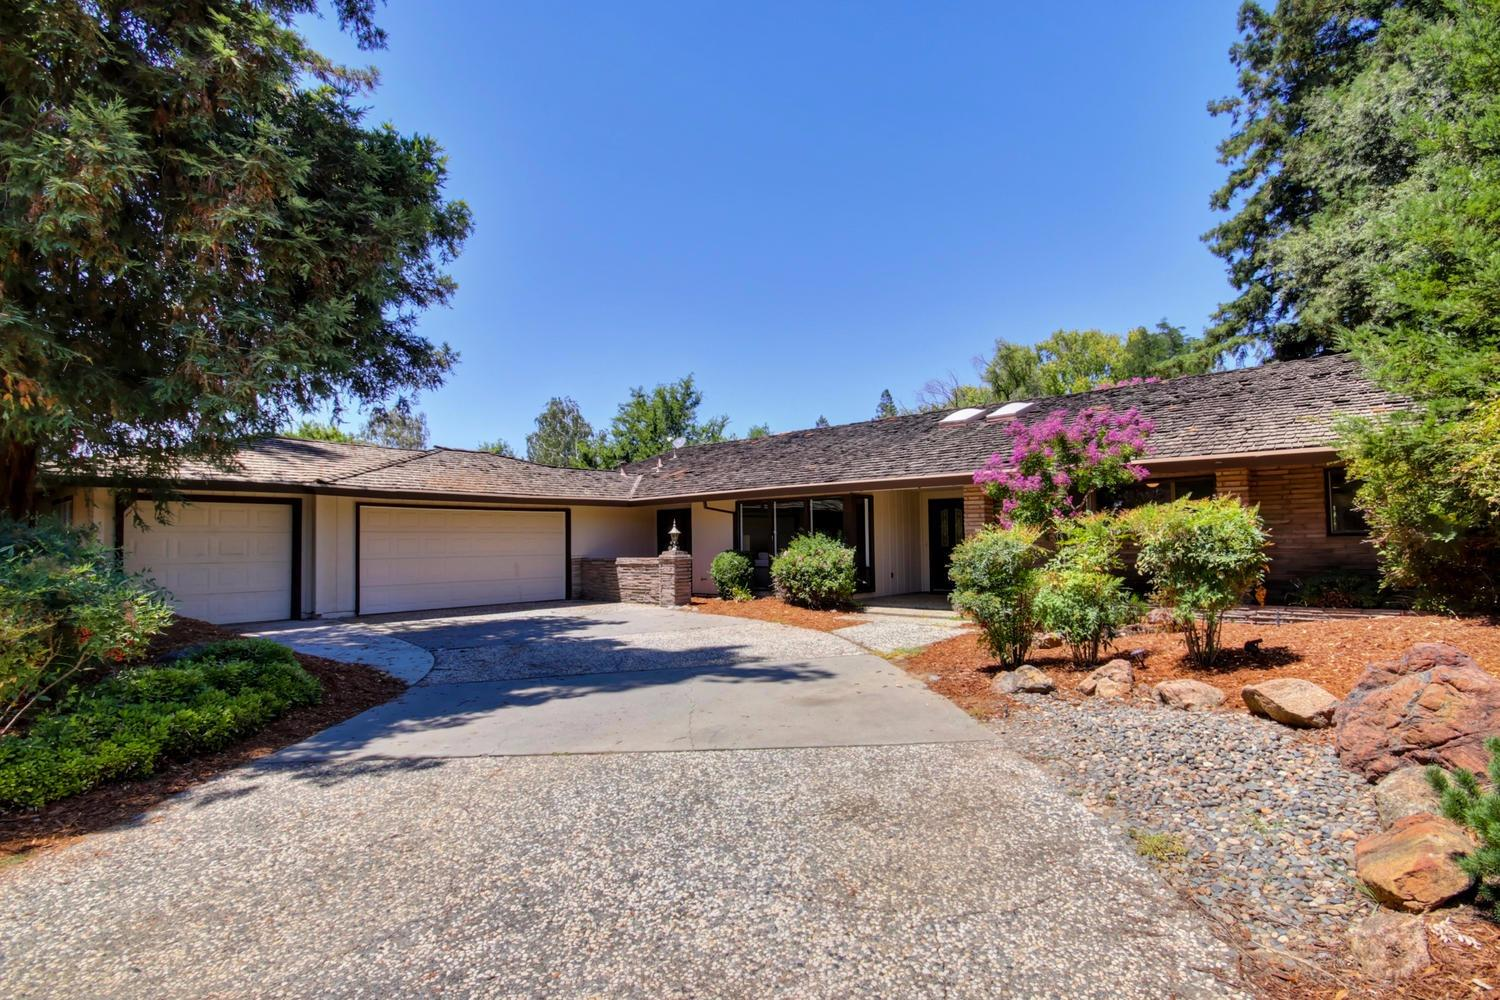 $995,000 - 5Br/3Ba -  for Sale in El Macero